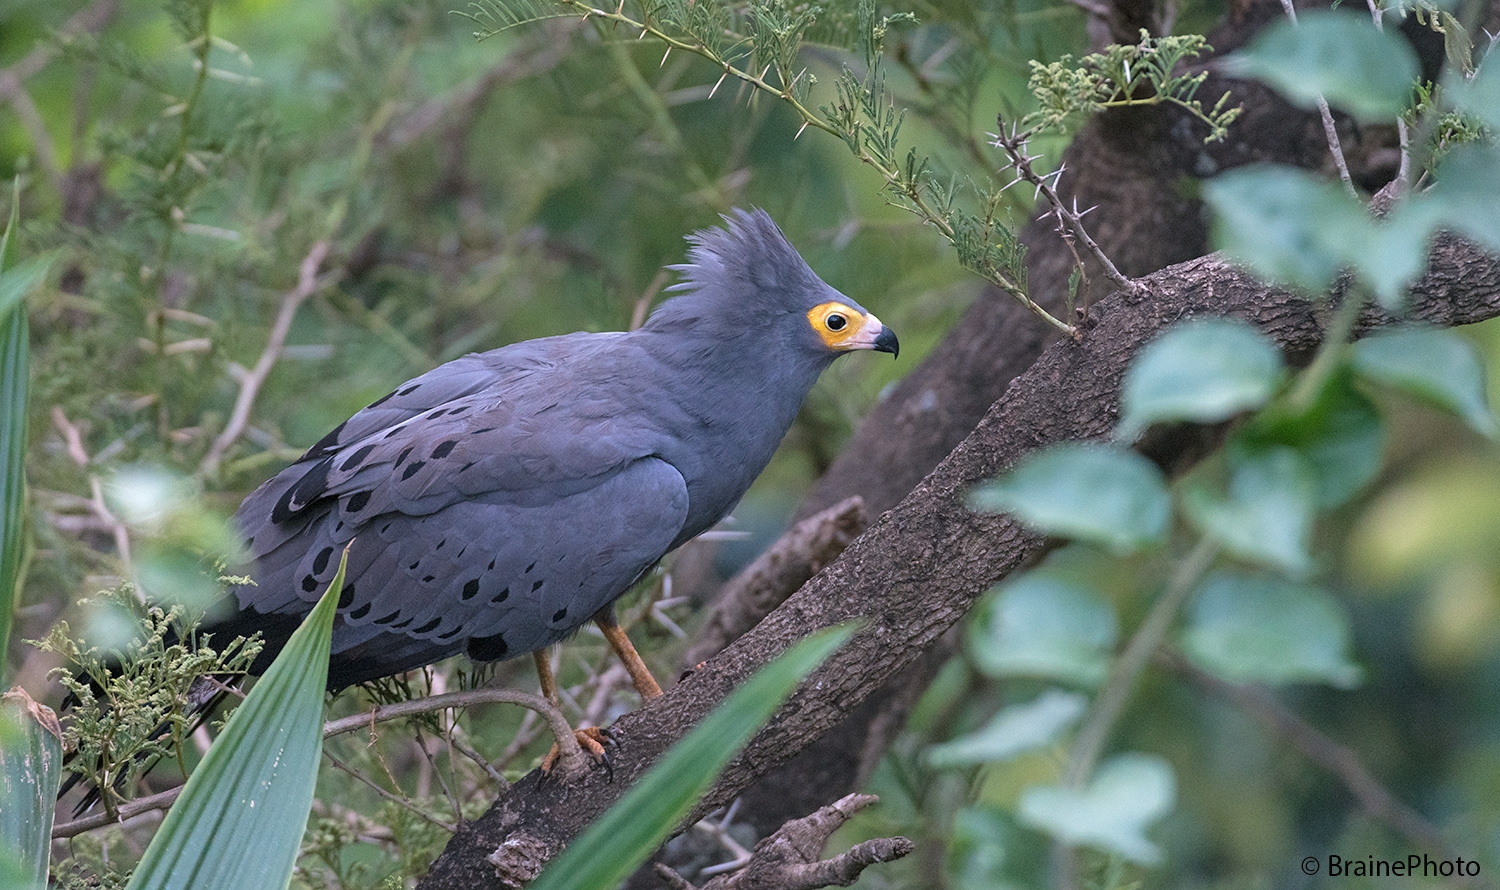 Our Ethiopian birding and photography tours offer an unforgettable experience and a great opportunity to view Ethiopia's magical wildlife, such as the African Harrier Hawk